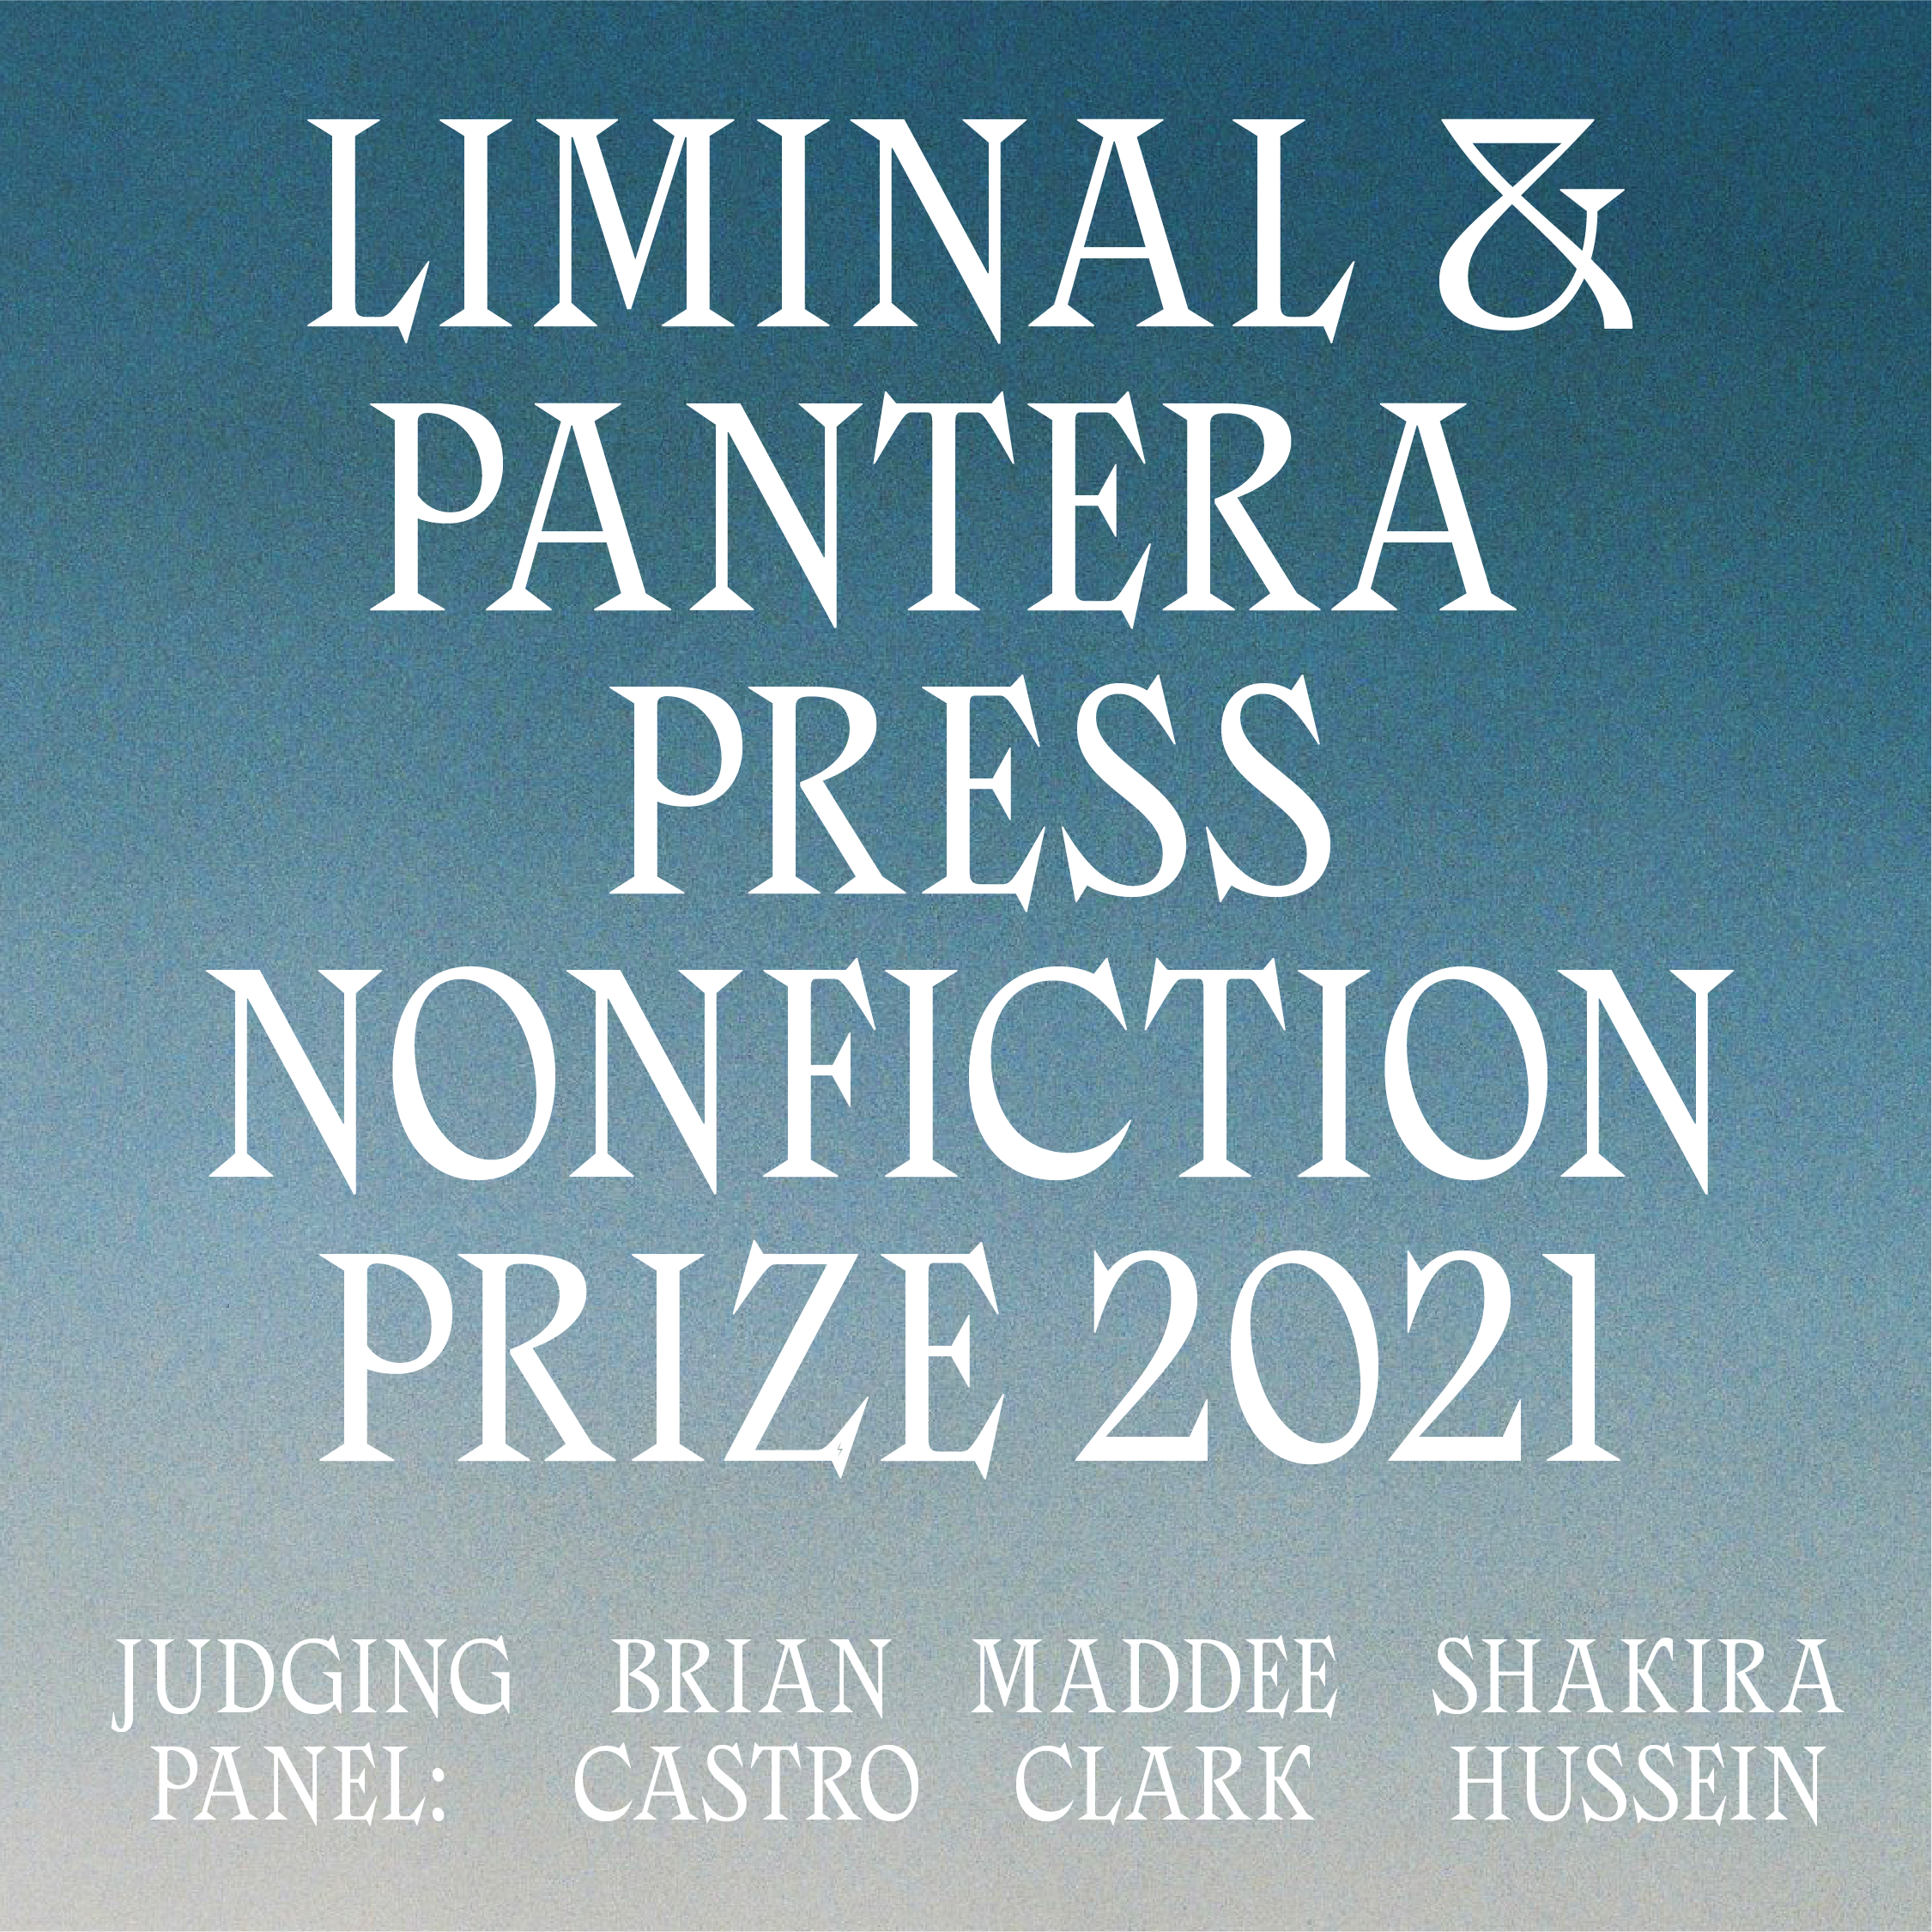 LIMINAL & Pantera Press announce nonfiction prize worth $12,000 and new anthology event image